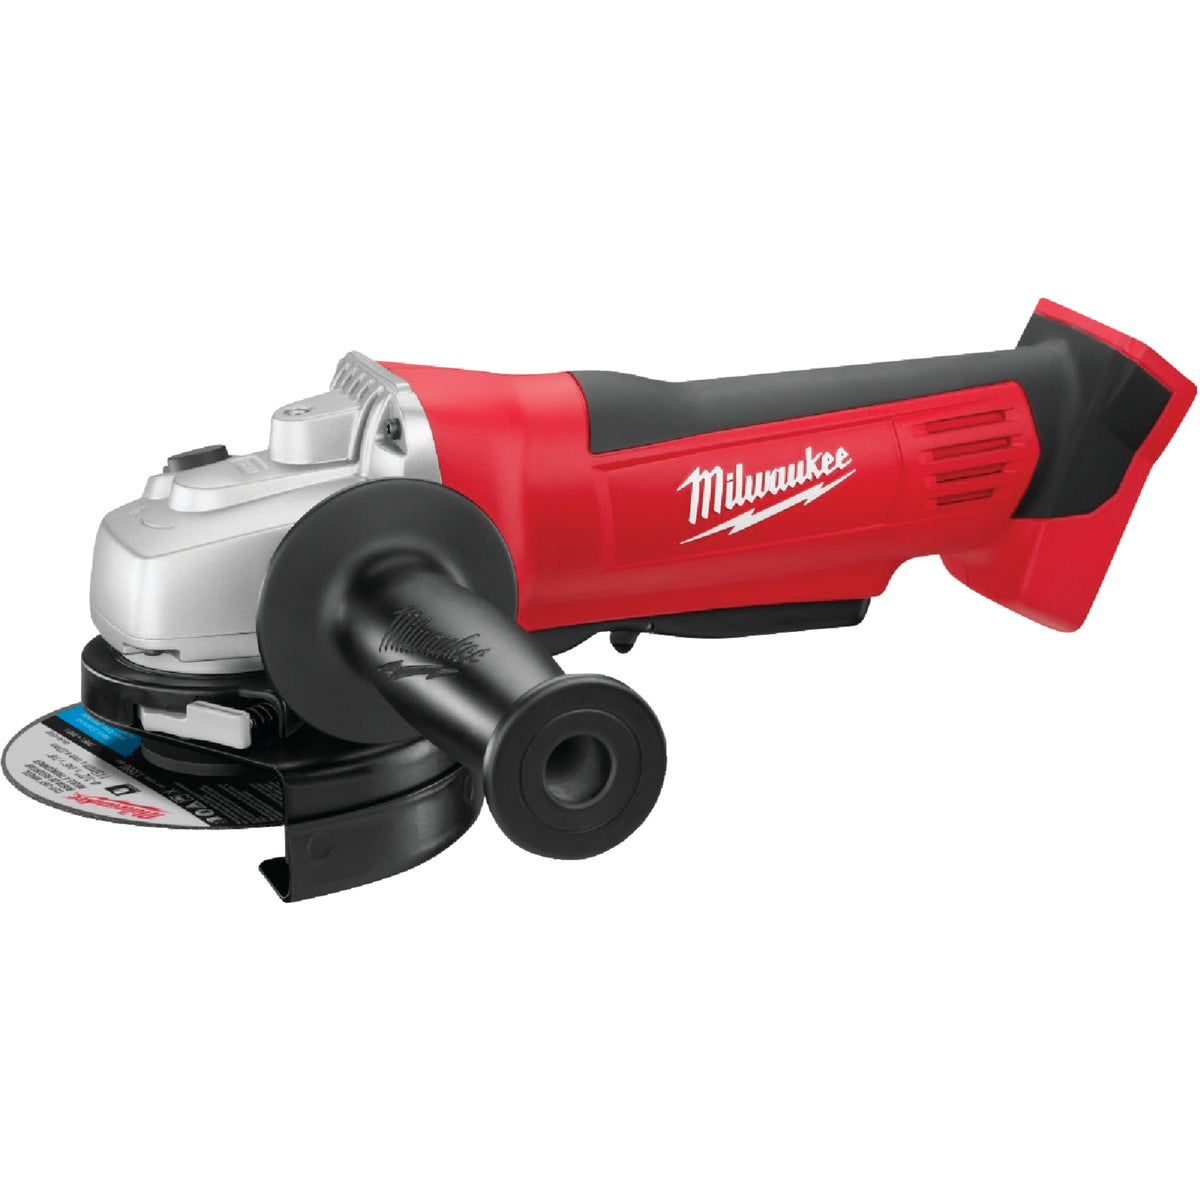 Cordless Power Tools - Misc